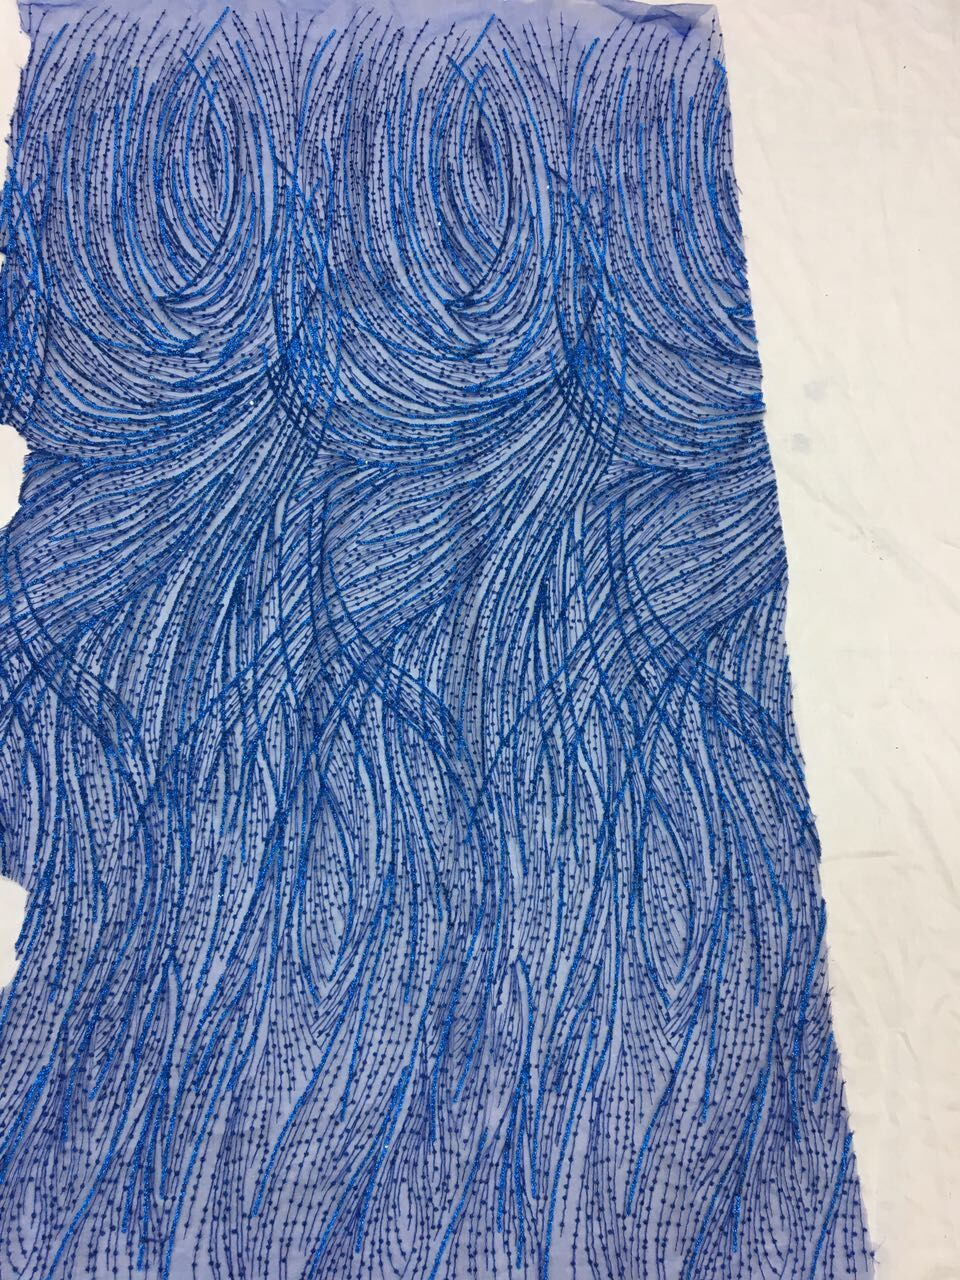 embroidery african tulle Lace fabric David 51214 with sequins 5yds lot French net lace fabric for